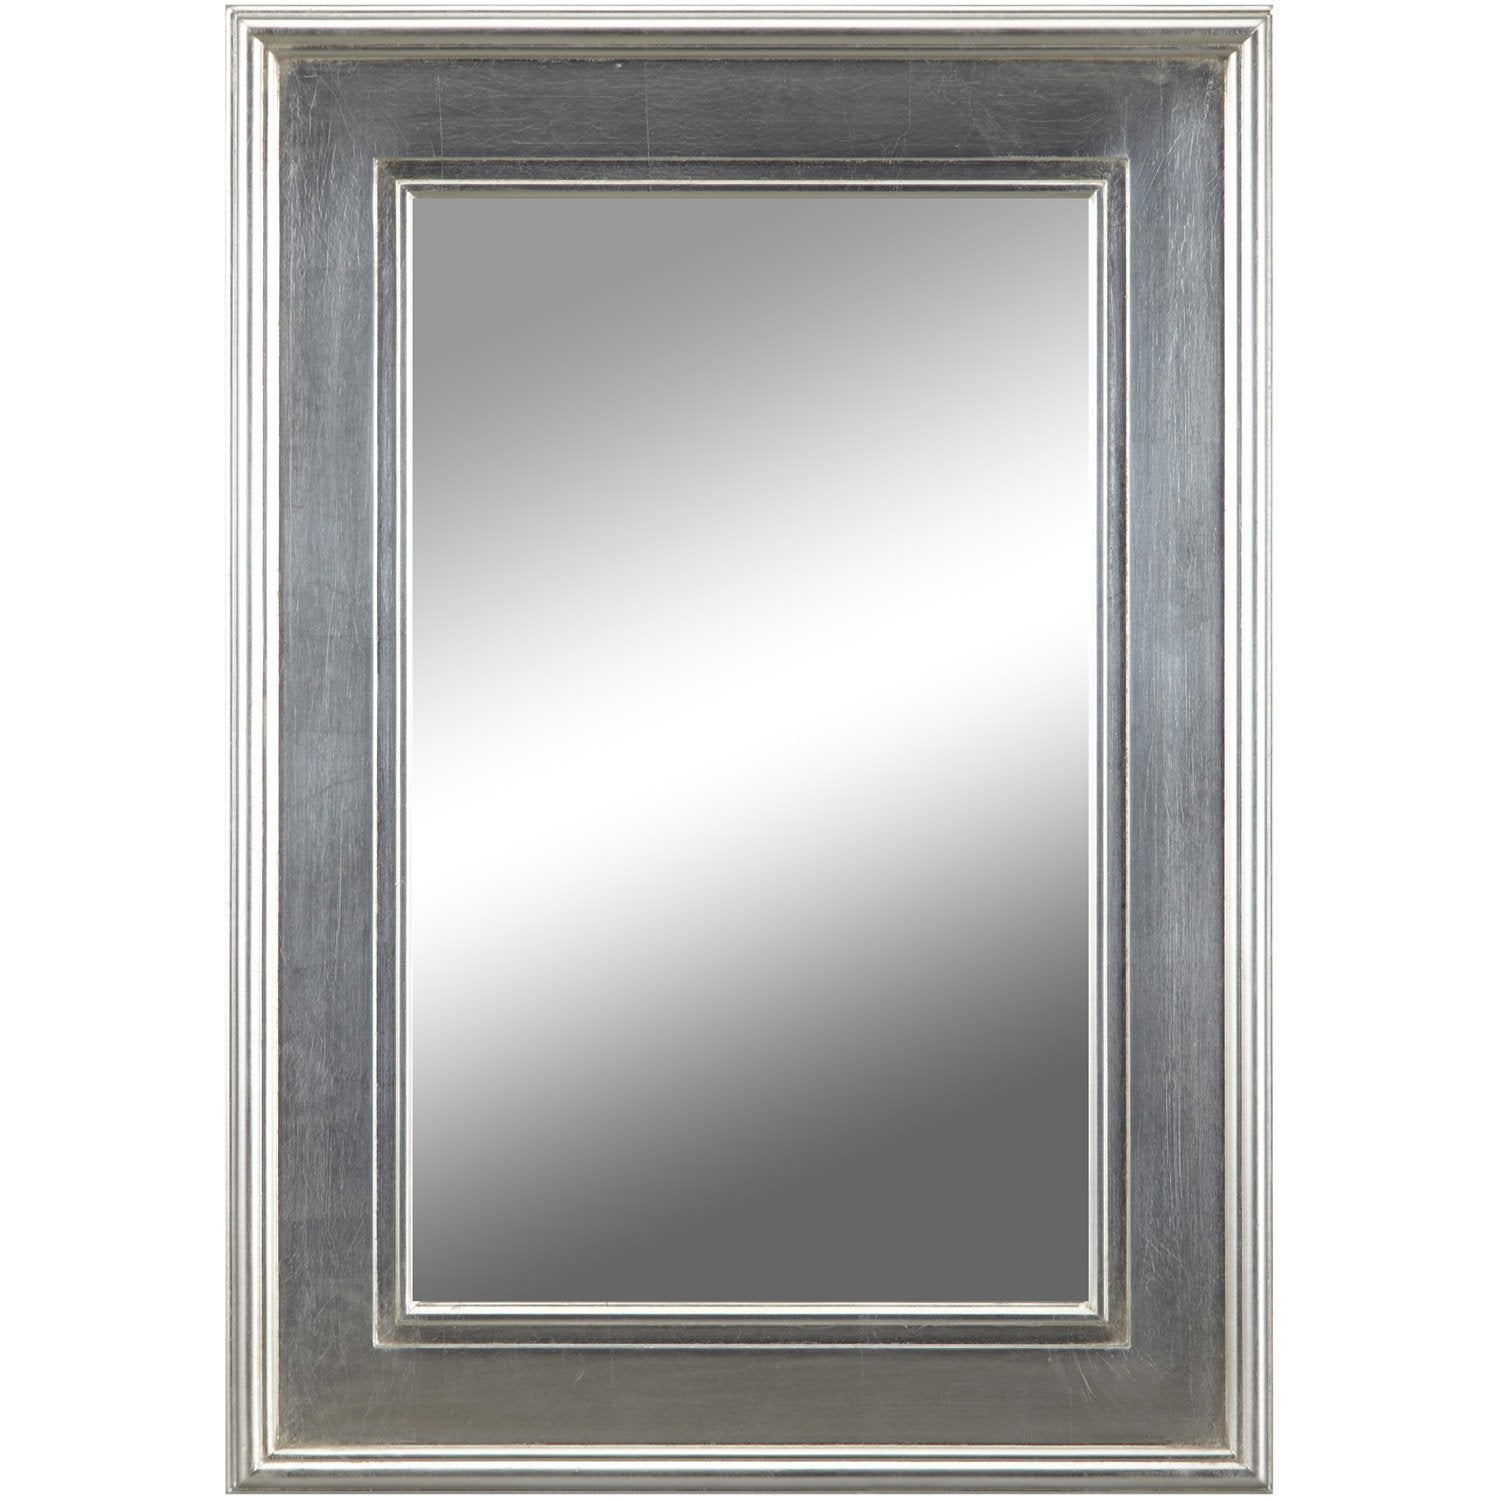 Miroir tisbury rectangle argent 50x70 cm leroy merlin for Miroir 50 x 70 leroy merlin